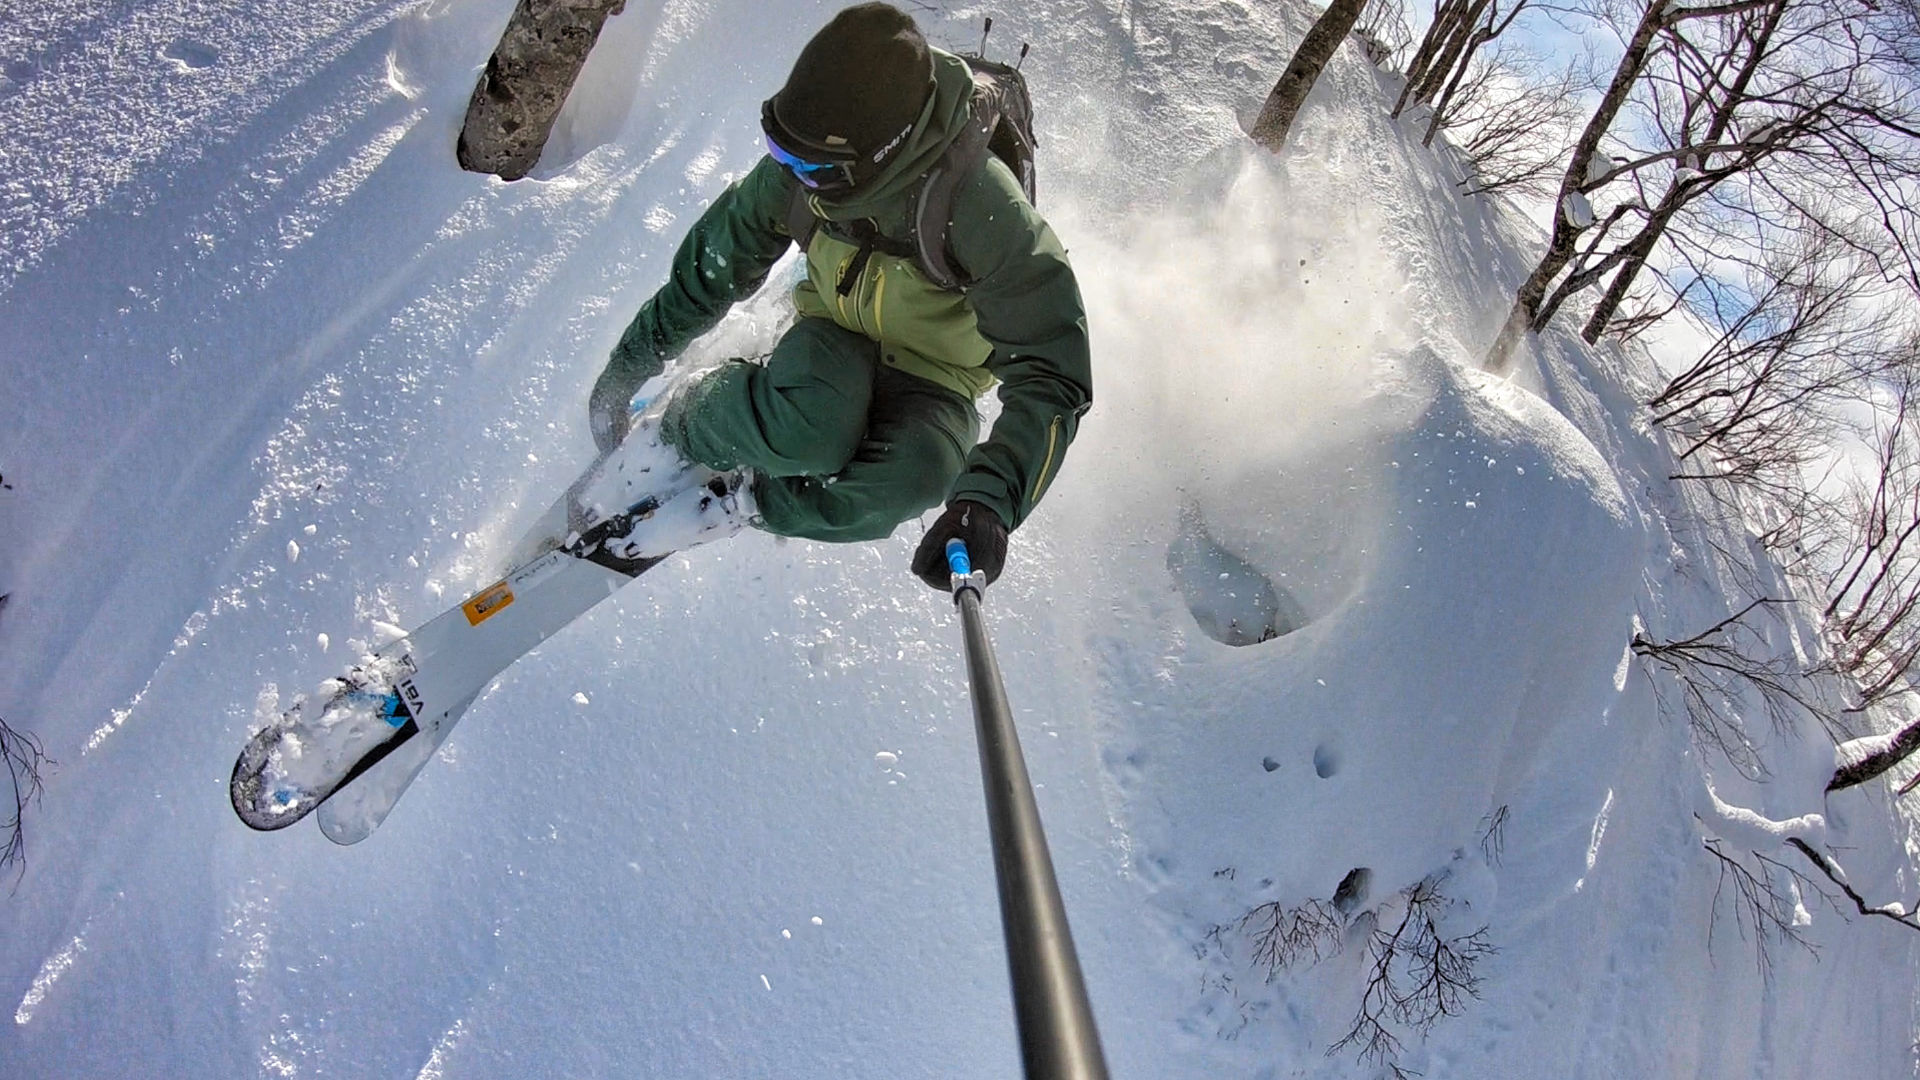 Blue Tomato Team Rider Fabio Studer freeriding in Japan with wide skis